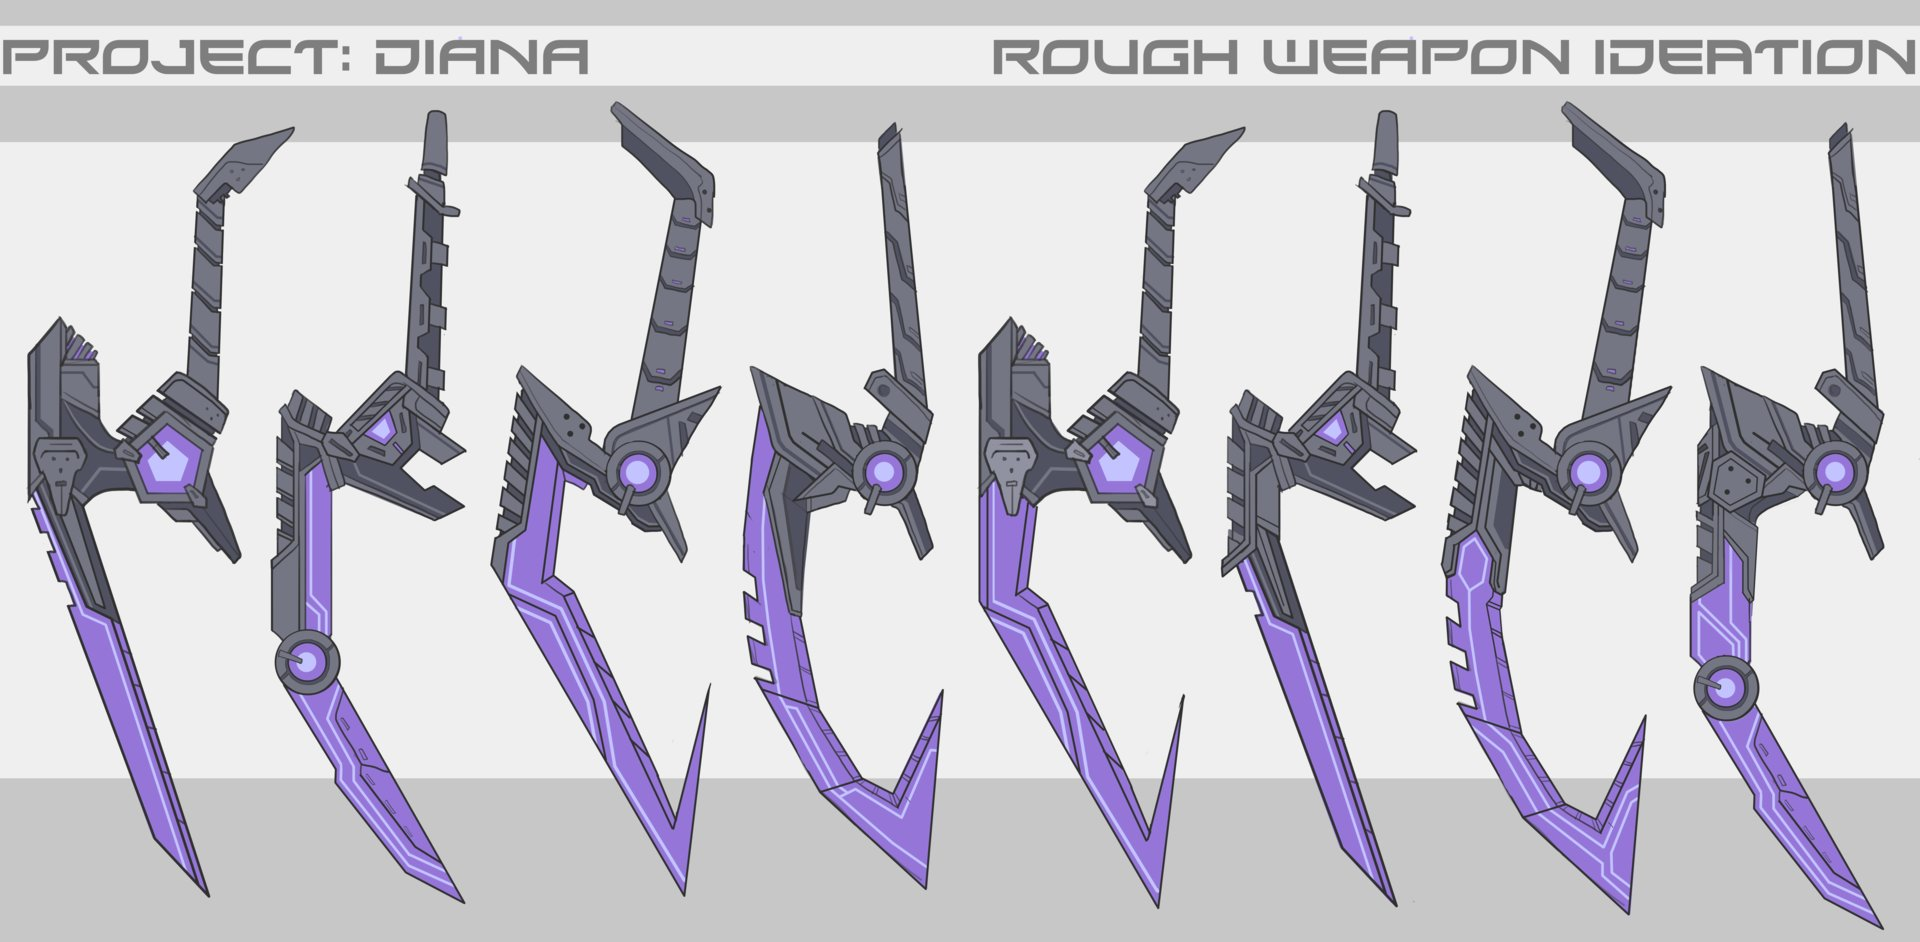 Thomas randby weaponideation1